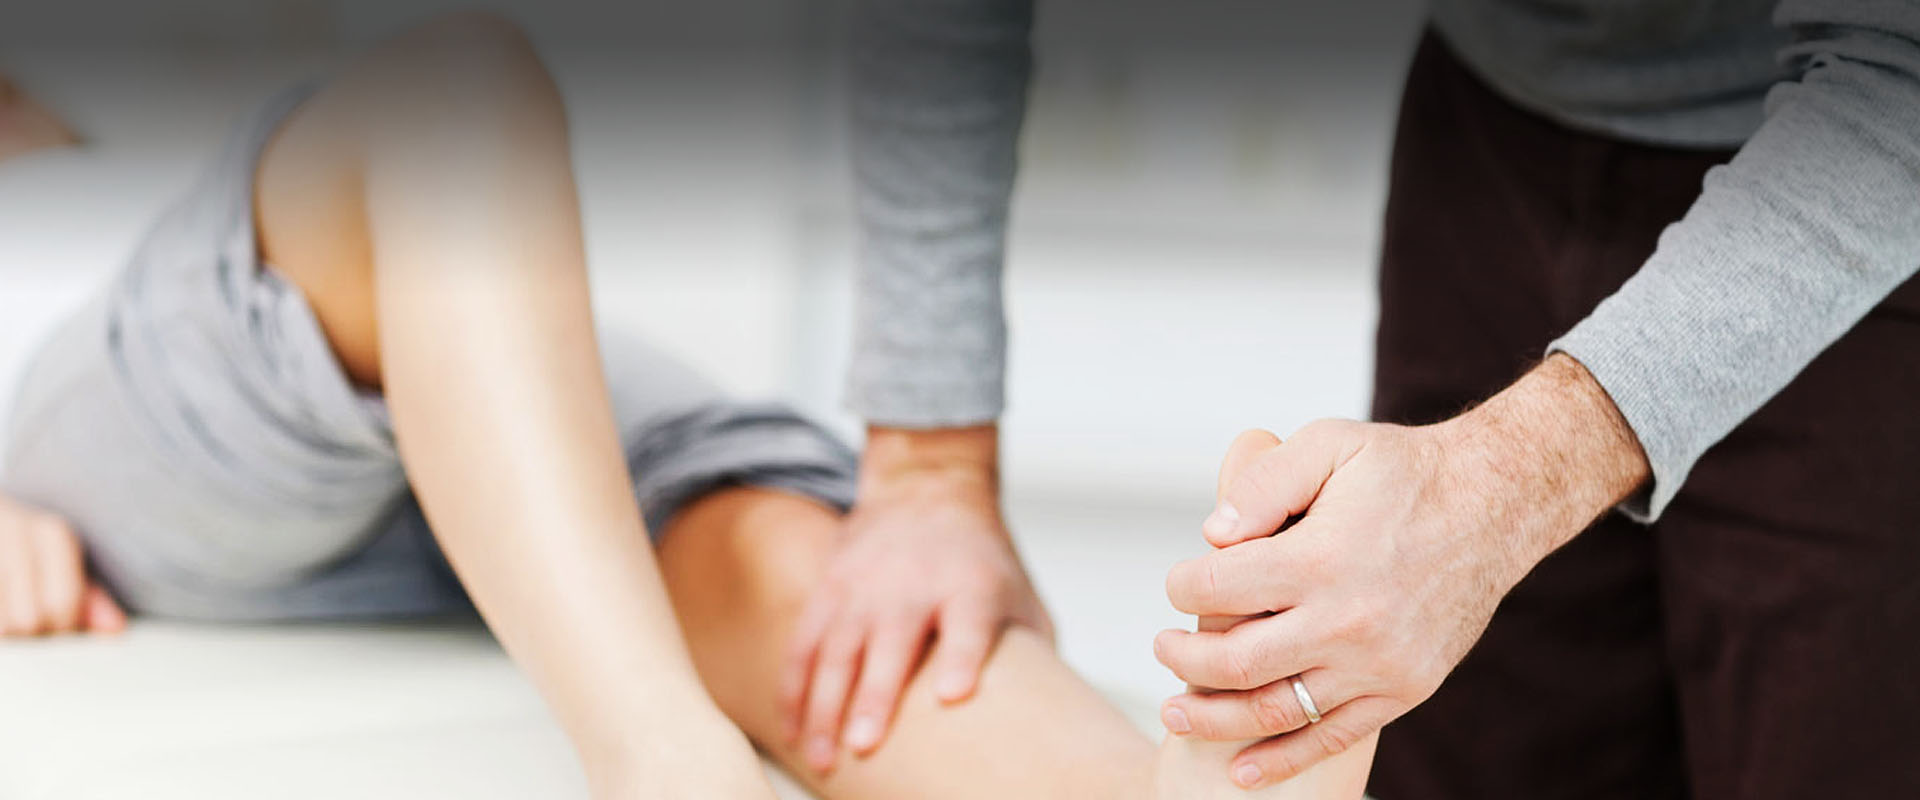 physiotherapy for woman's leg injury